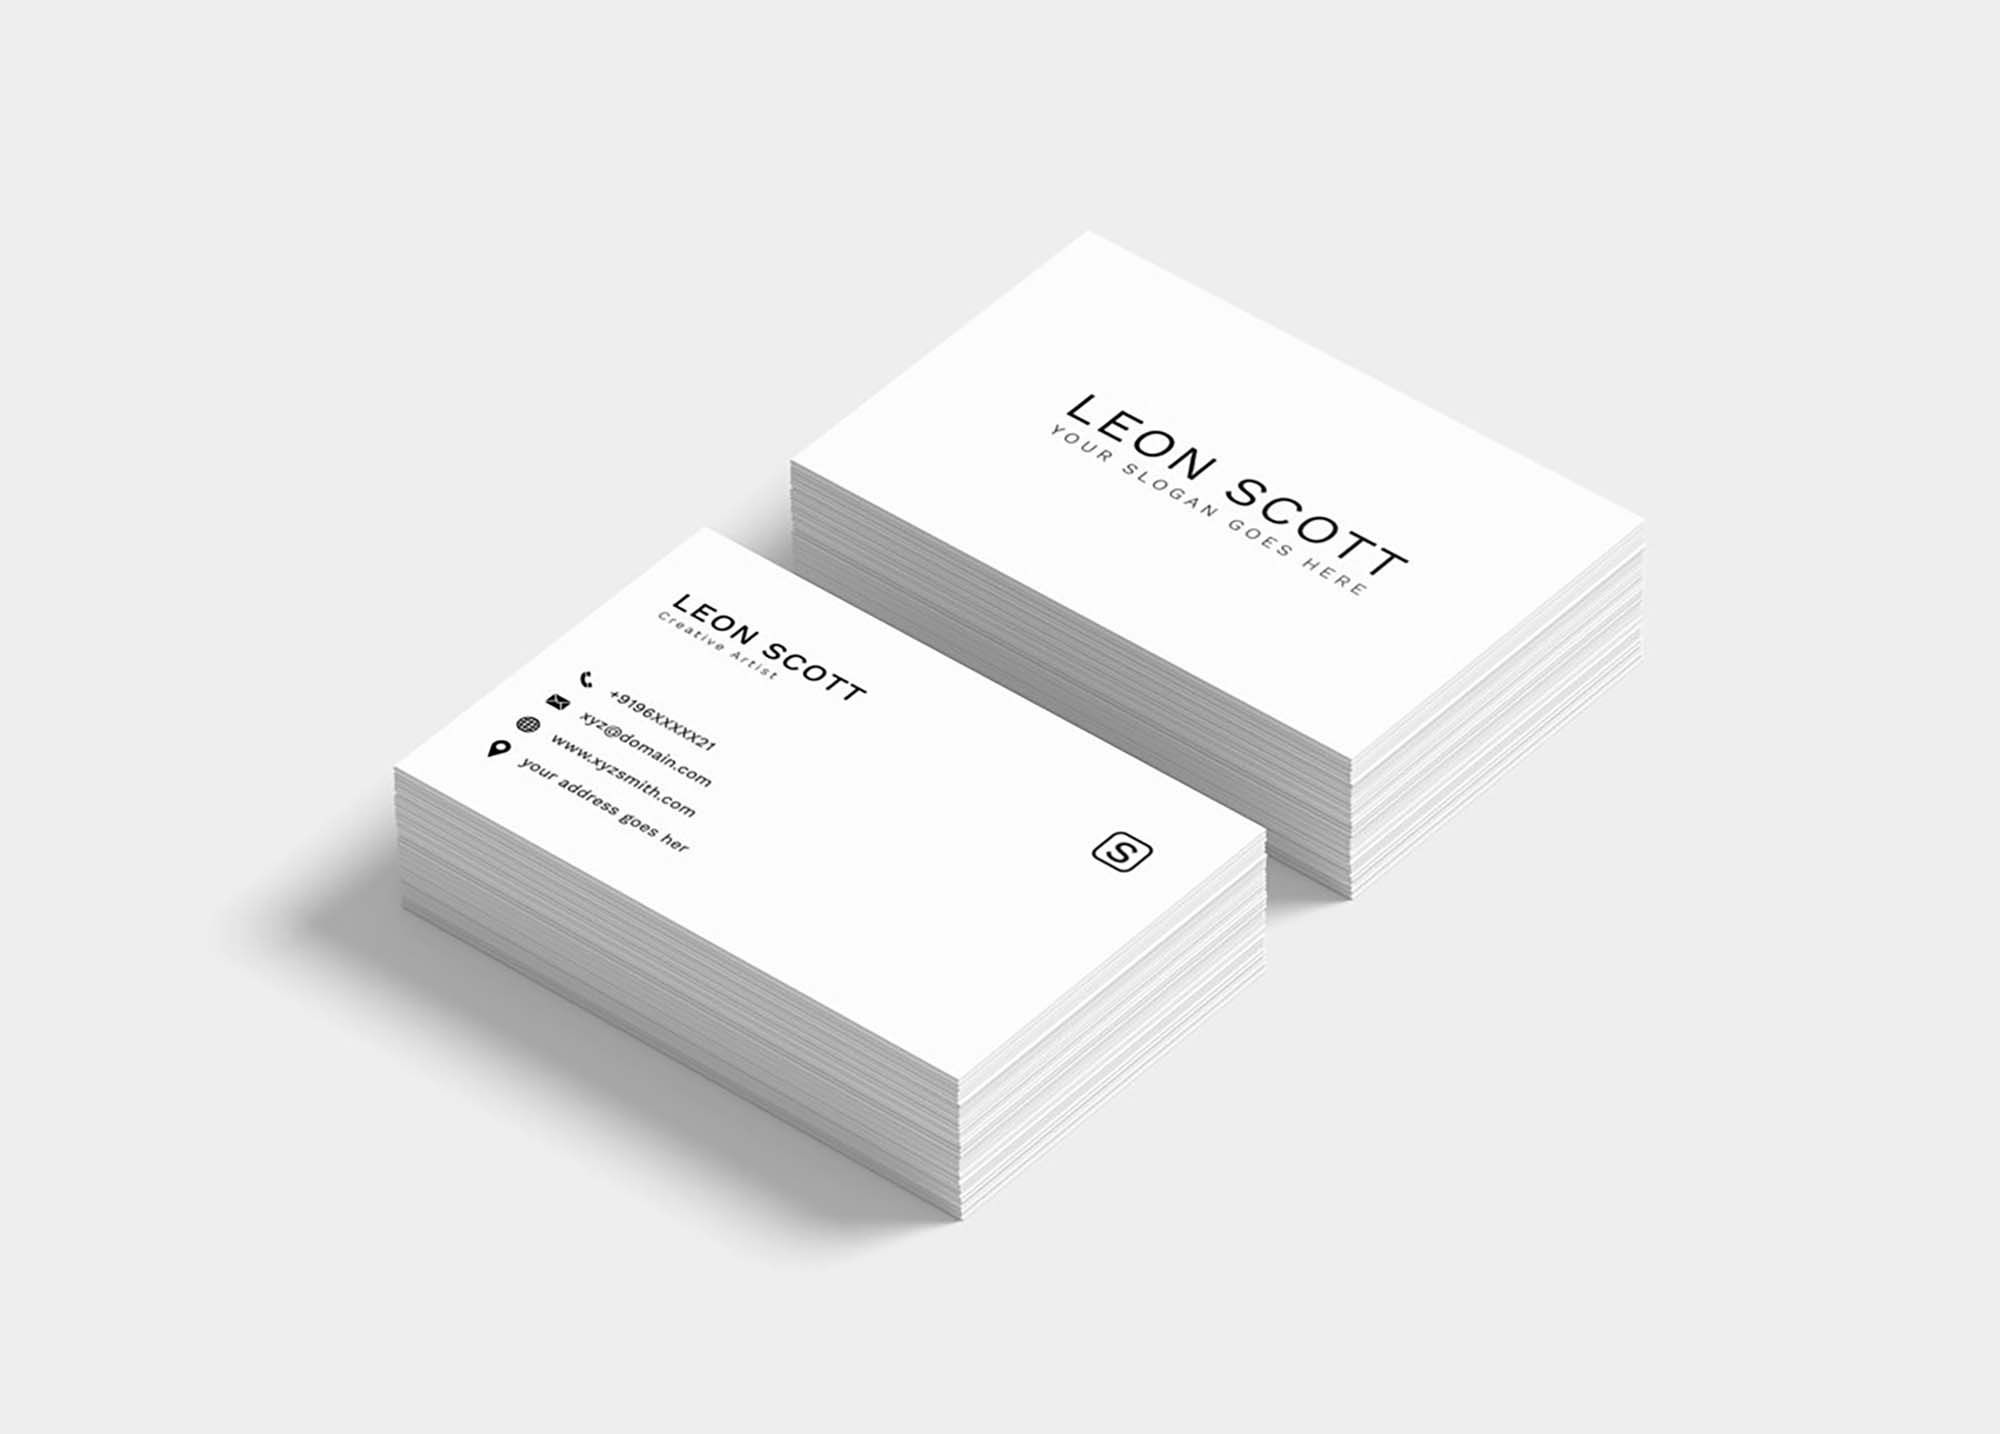 006 Shocking Simple Busines Card Template Photoshop Sample Full